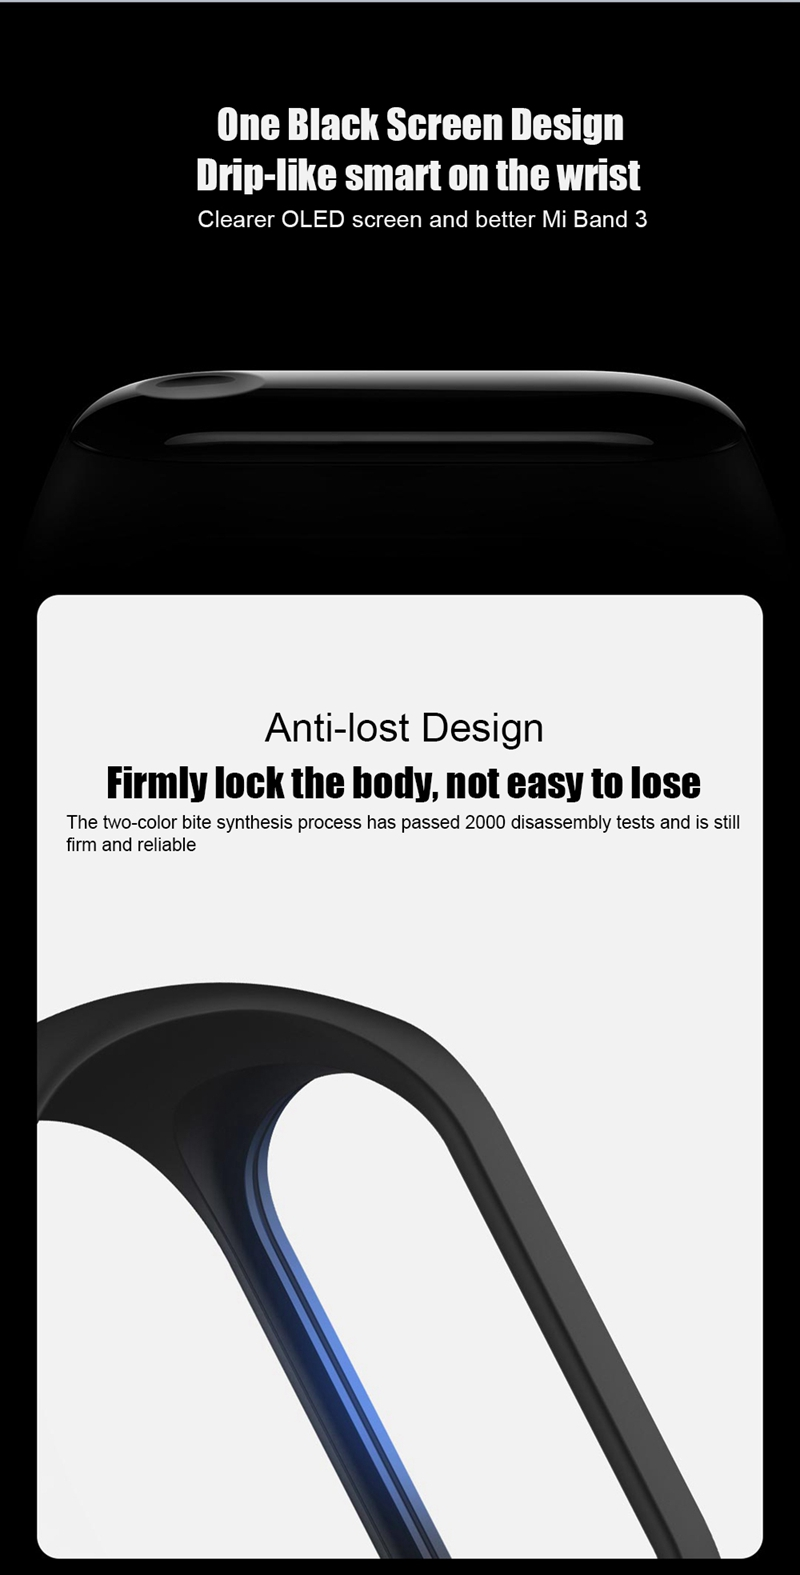 Newest Original Xiaomi Mi Band 3 Smart Band NFC Version Fitness Tracker Heart Rate Monitor 5ATM Waterproof Bluetooth Wristbands 30